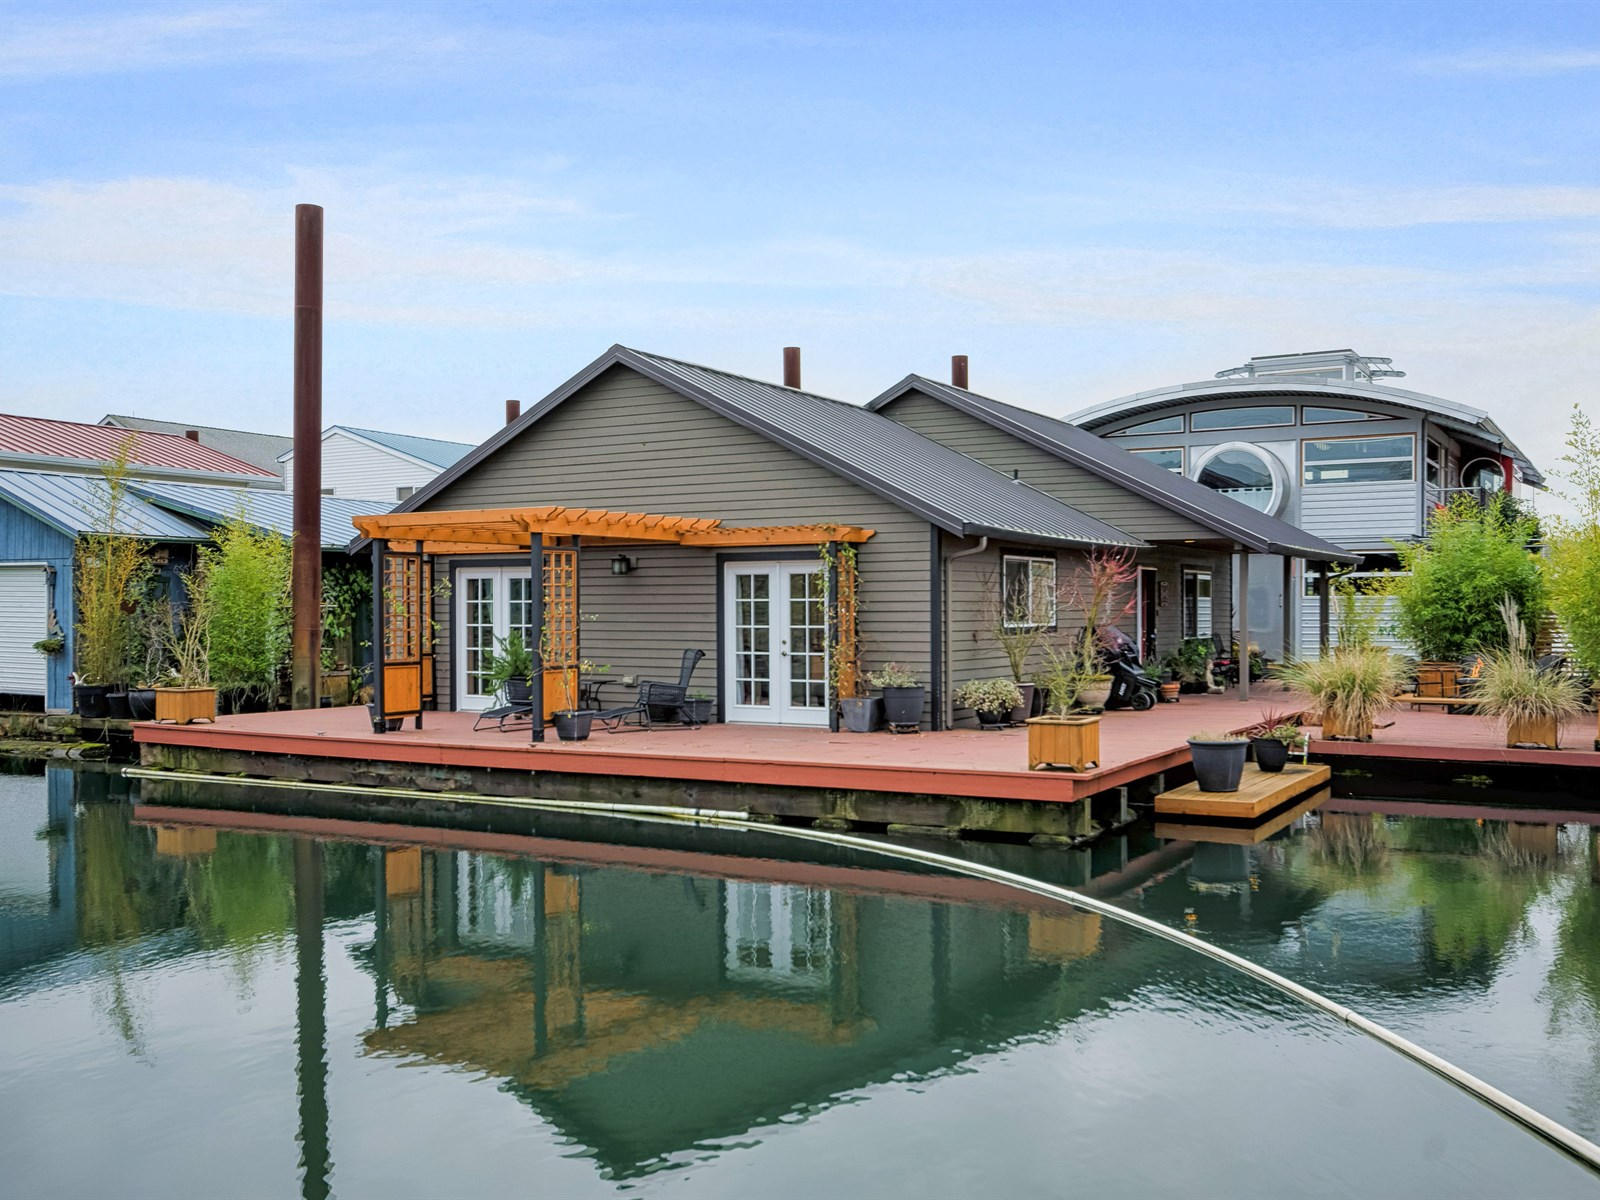 Floating homes portland or homemade ftempo for Floating homes portland